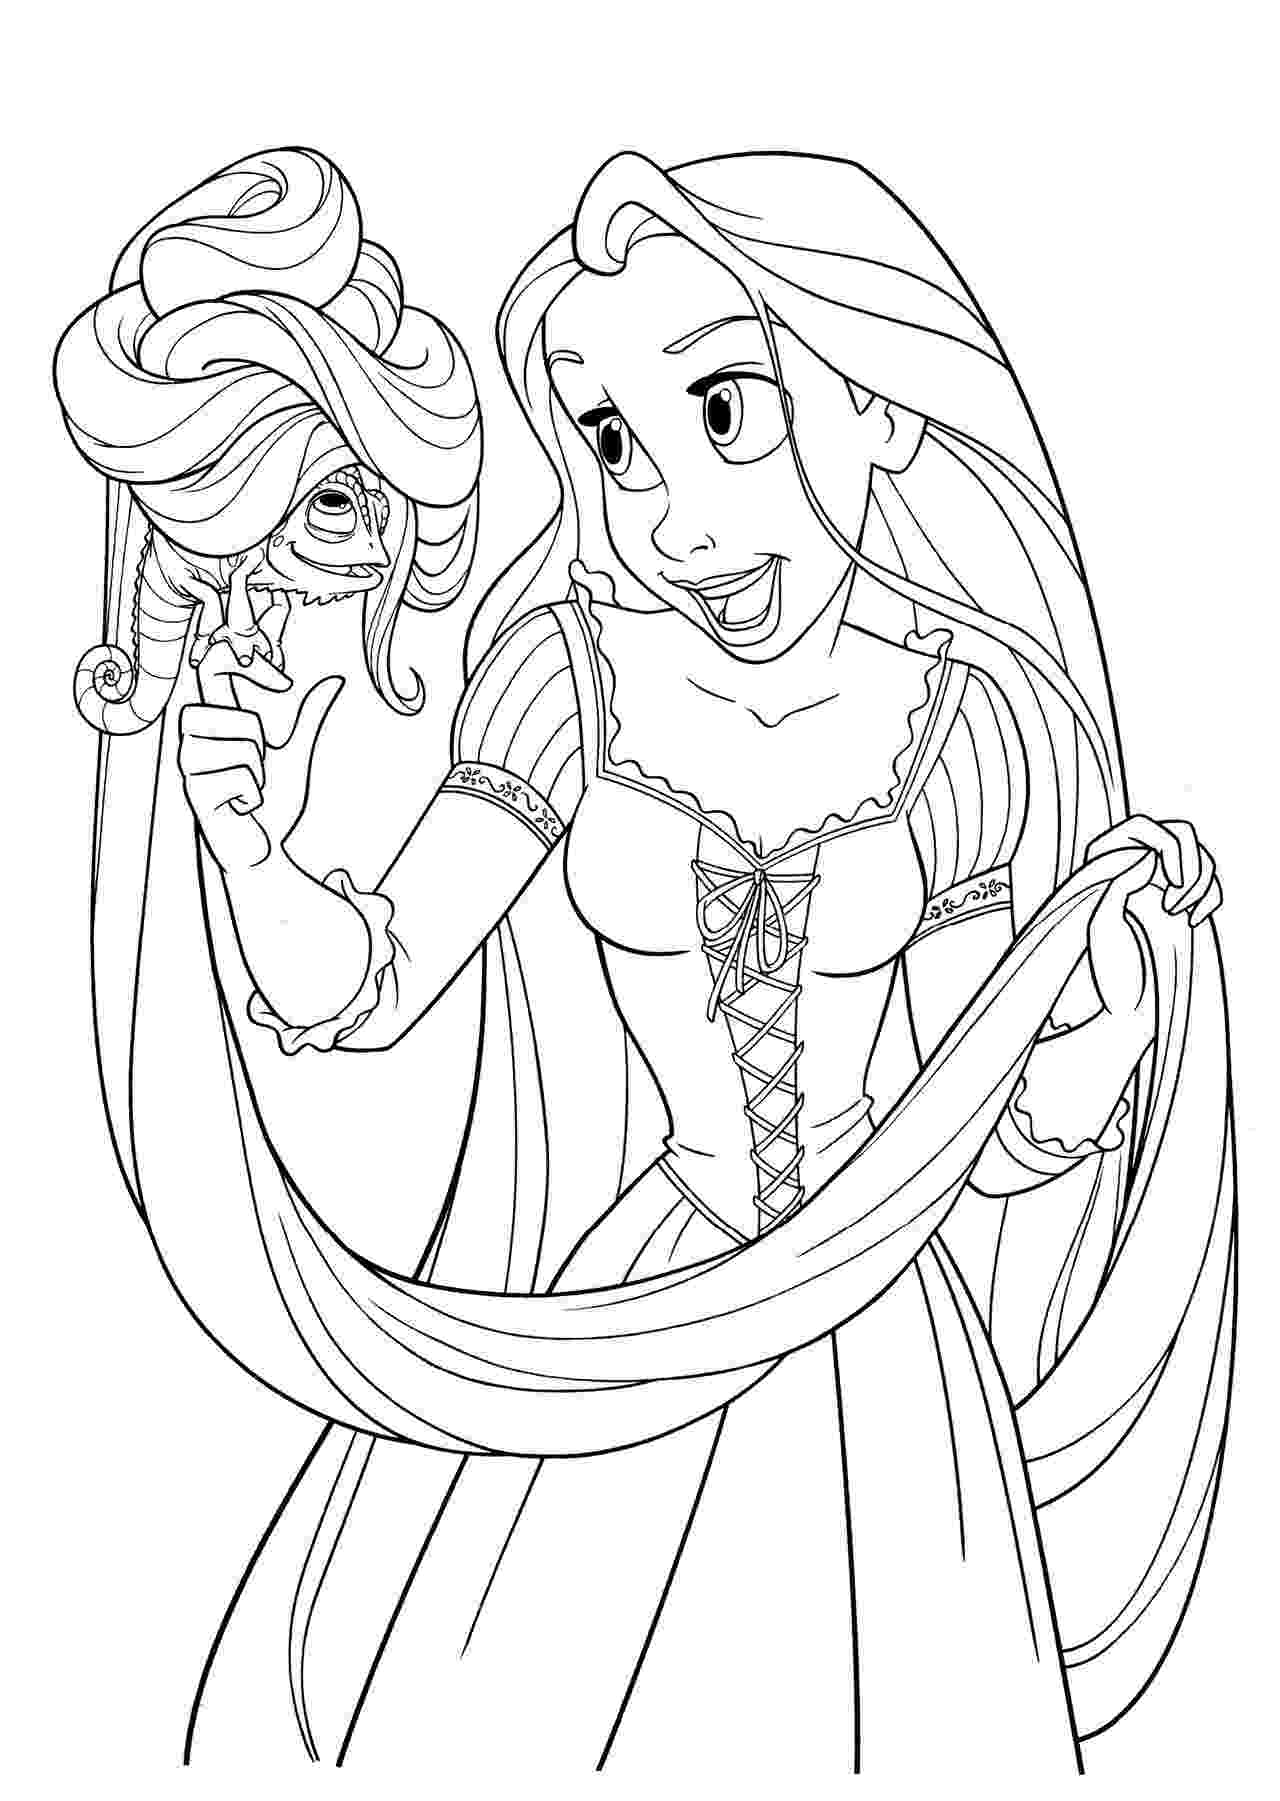 tangled coloring sheets free printable tangled coloring pages for kids cool2bkids sheets tangled coloring